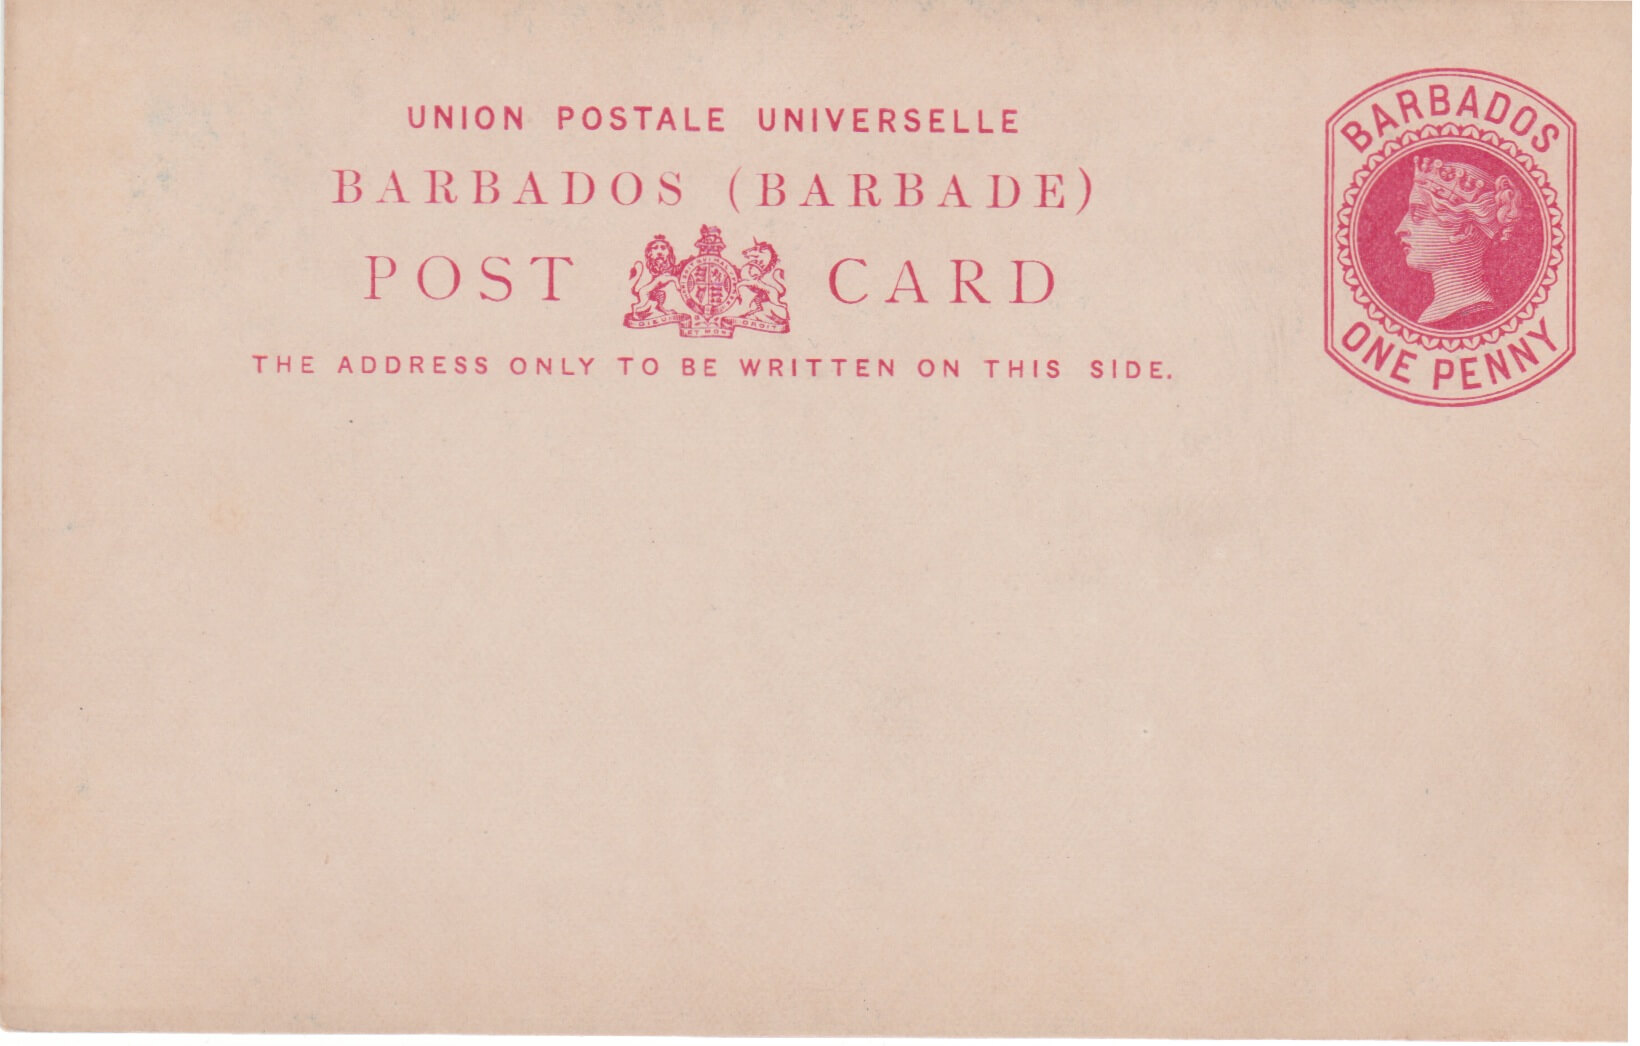 Barbados Reply paid card